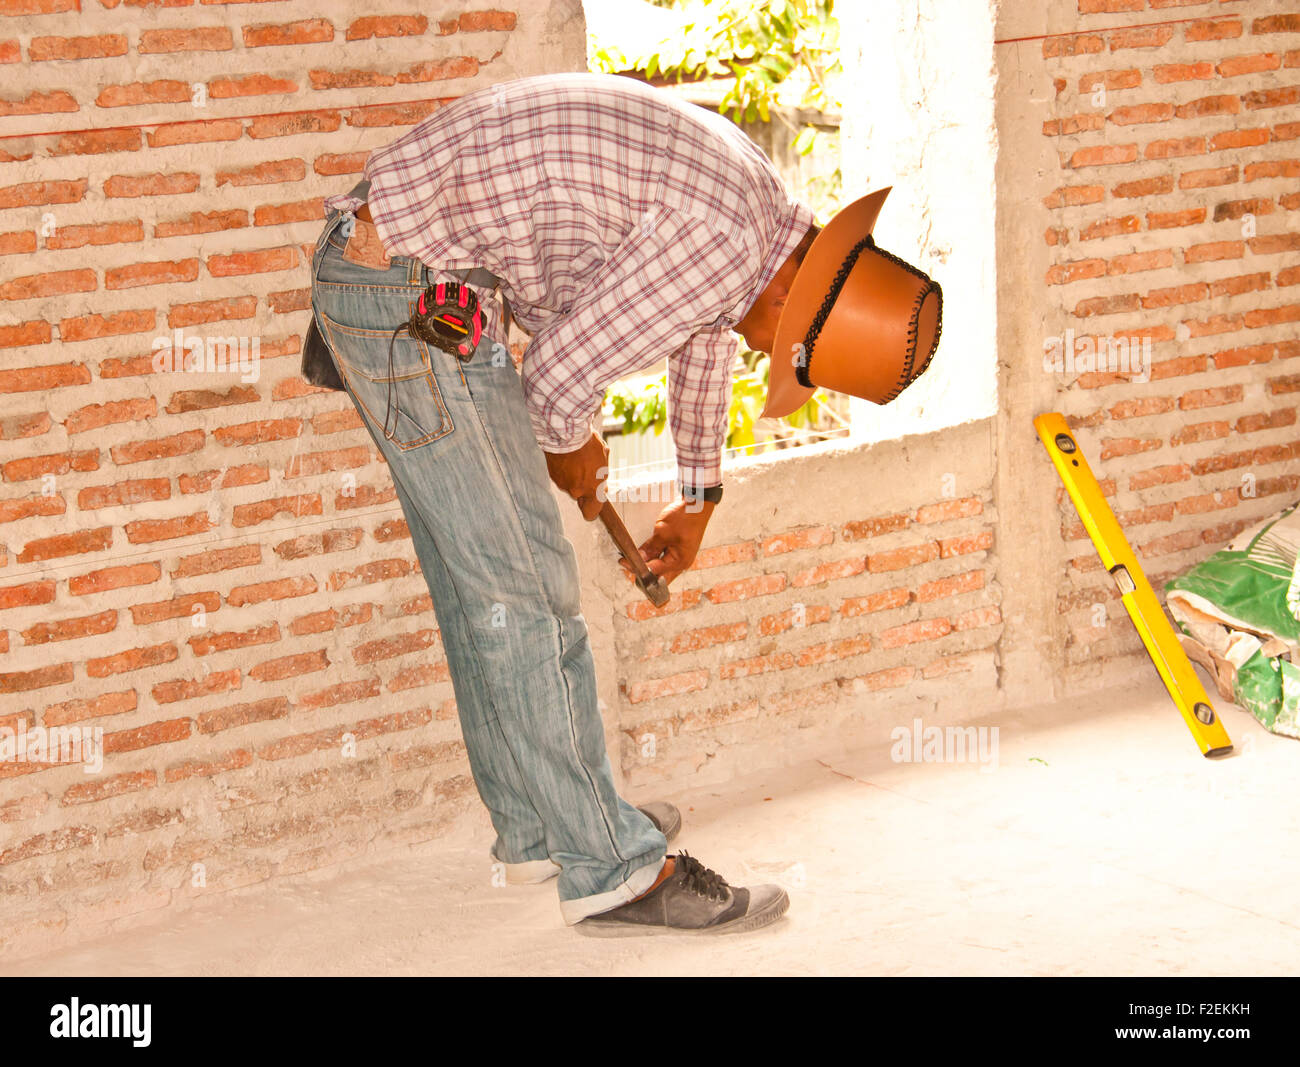 Construction workers are preparing a brick wall. - Stock Image